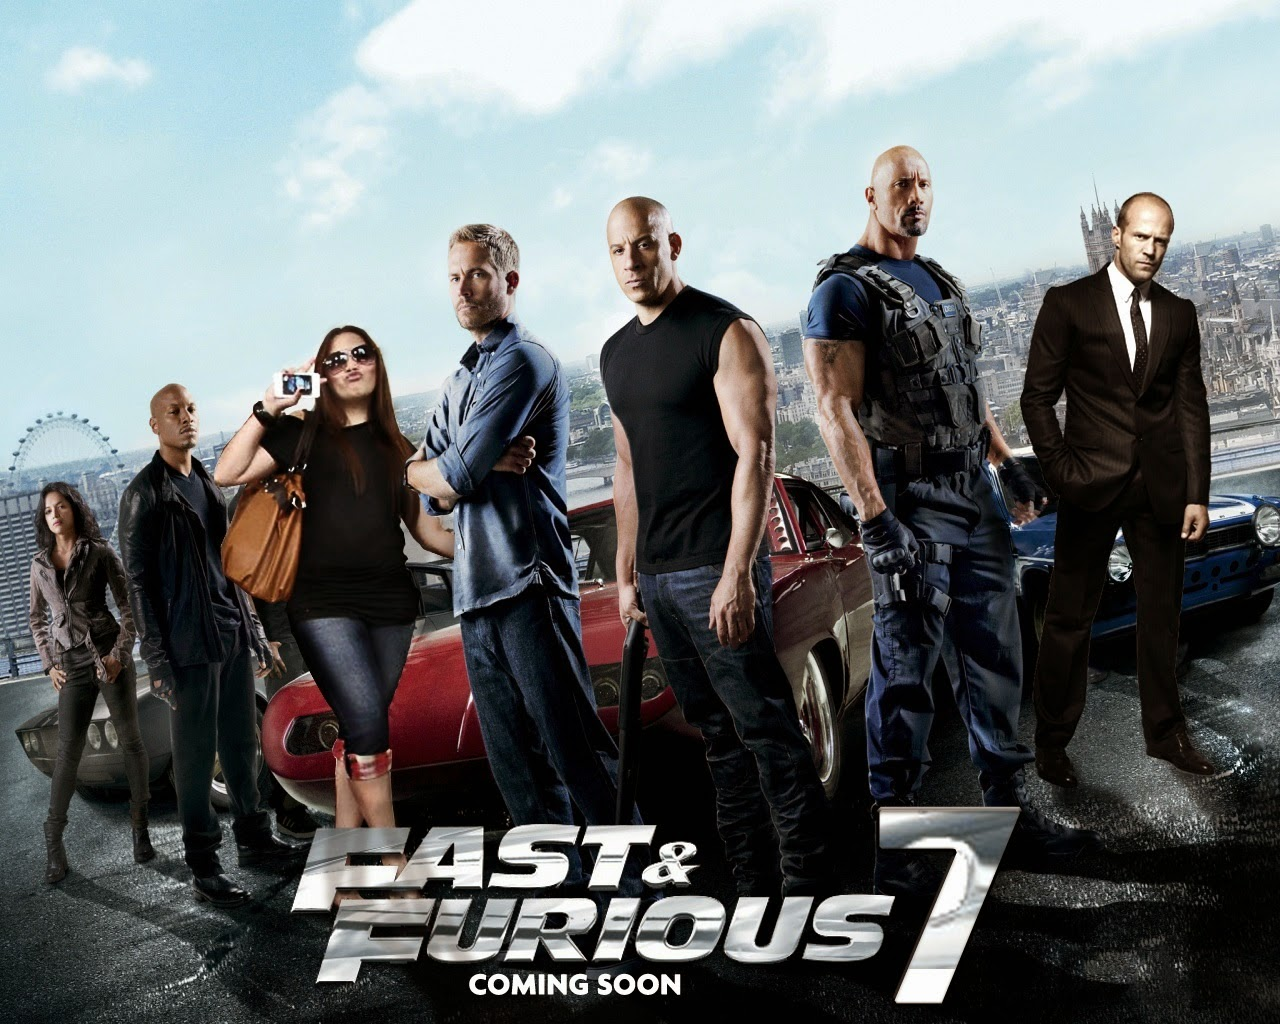 Fast and furious 7 full movie download mp4 free hindi dubbed livindn.